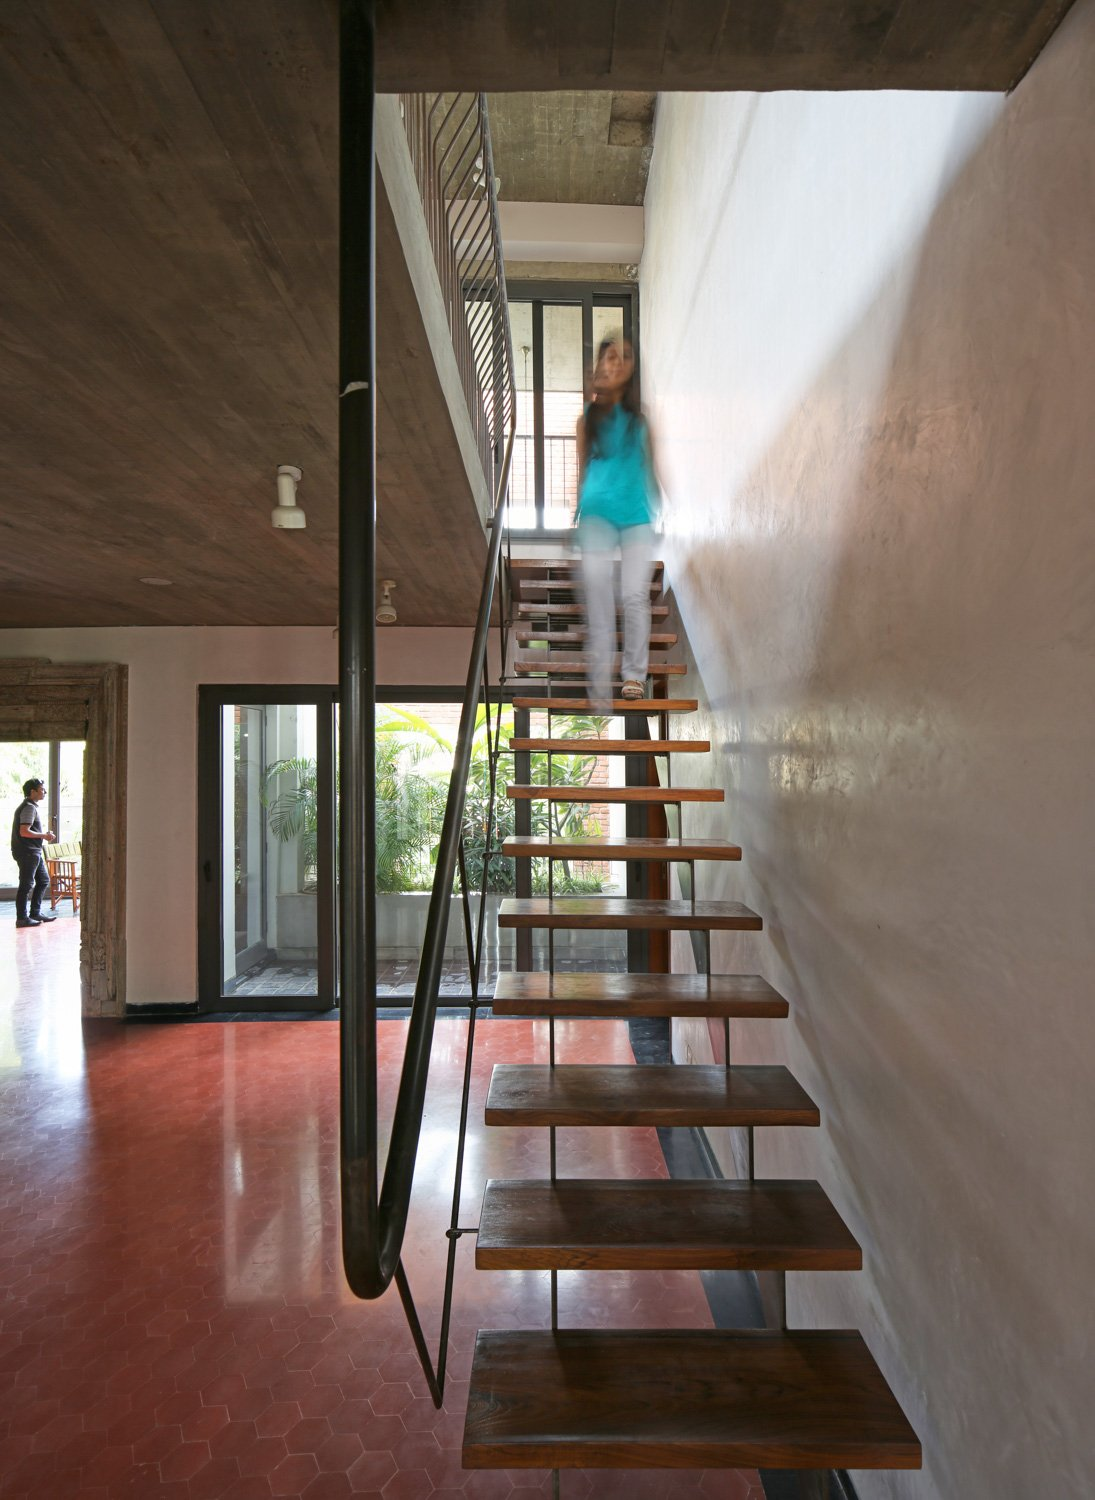 The materiality highlights the spatial expression of the House Edmund Sumner}